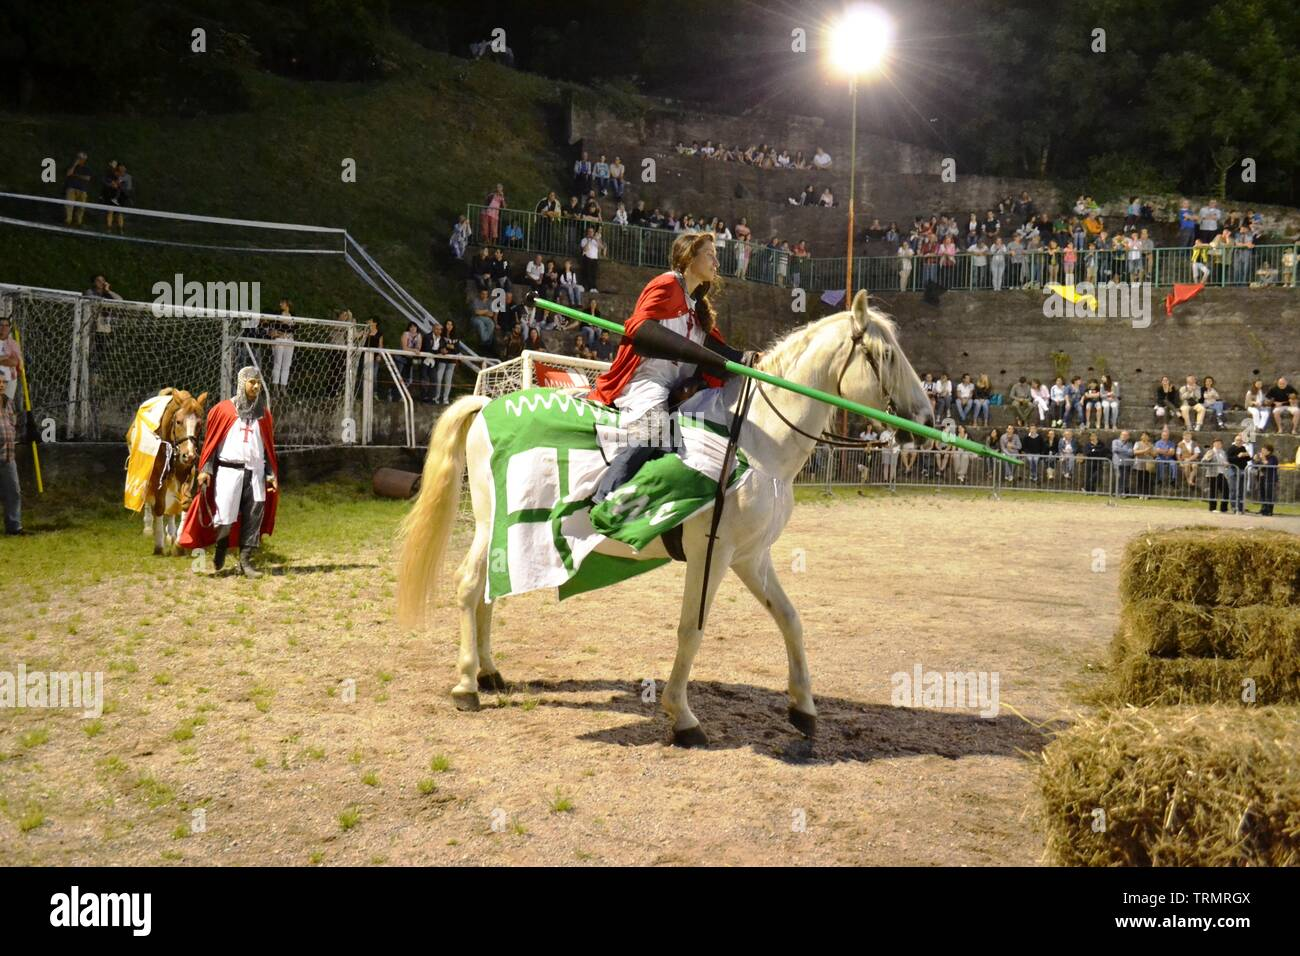 Primaluna/Italy - June 21, 2014: Medieval knight characters ready for rings competition during the Medieval festival of six fractions of the town. Stock Photo